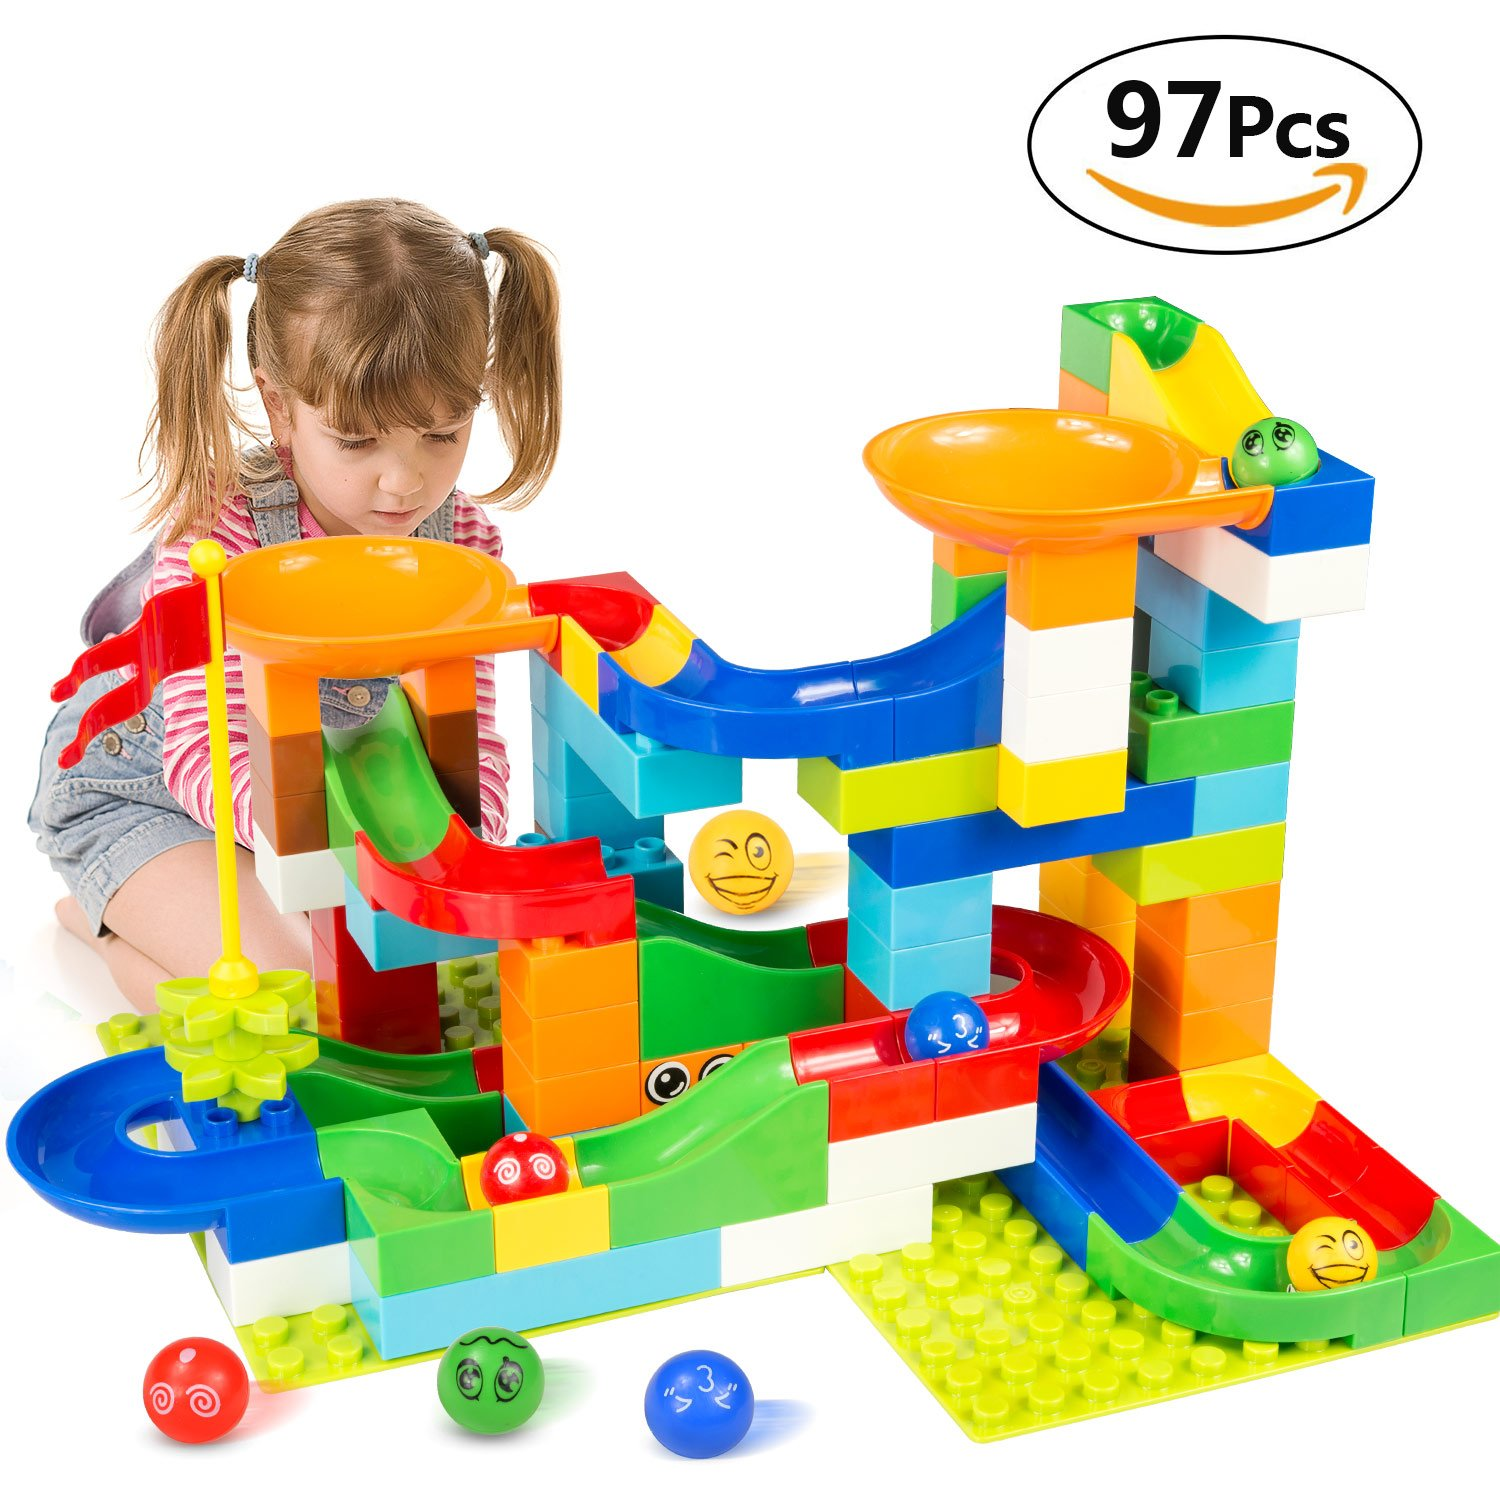 Amazon BATTOP Marble Run Building Blocks Construction Toys